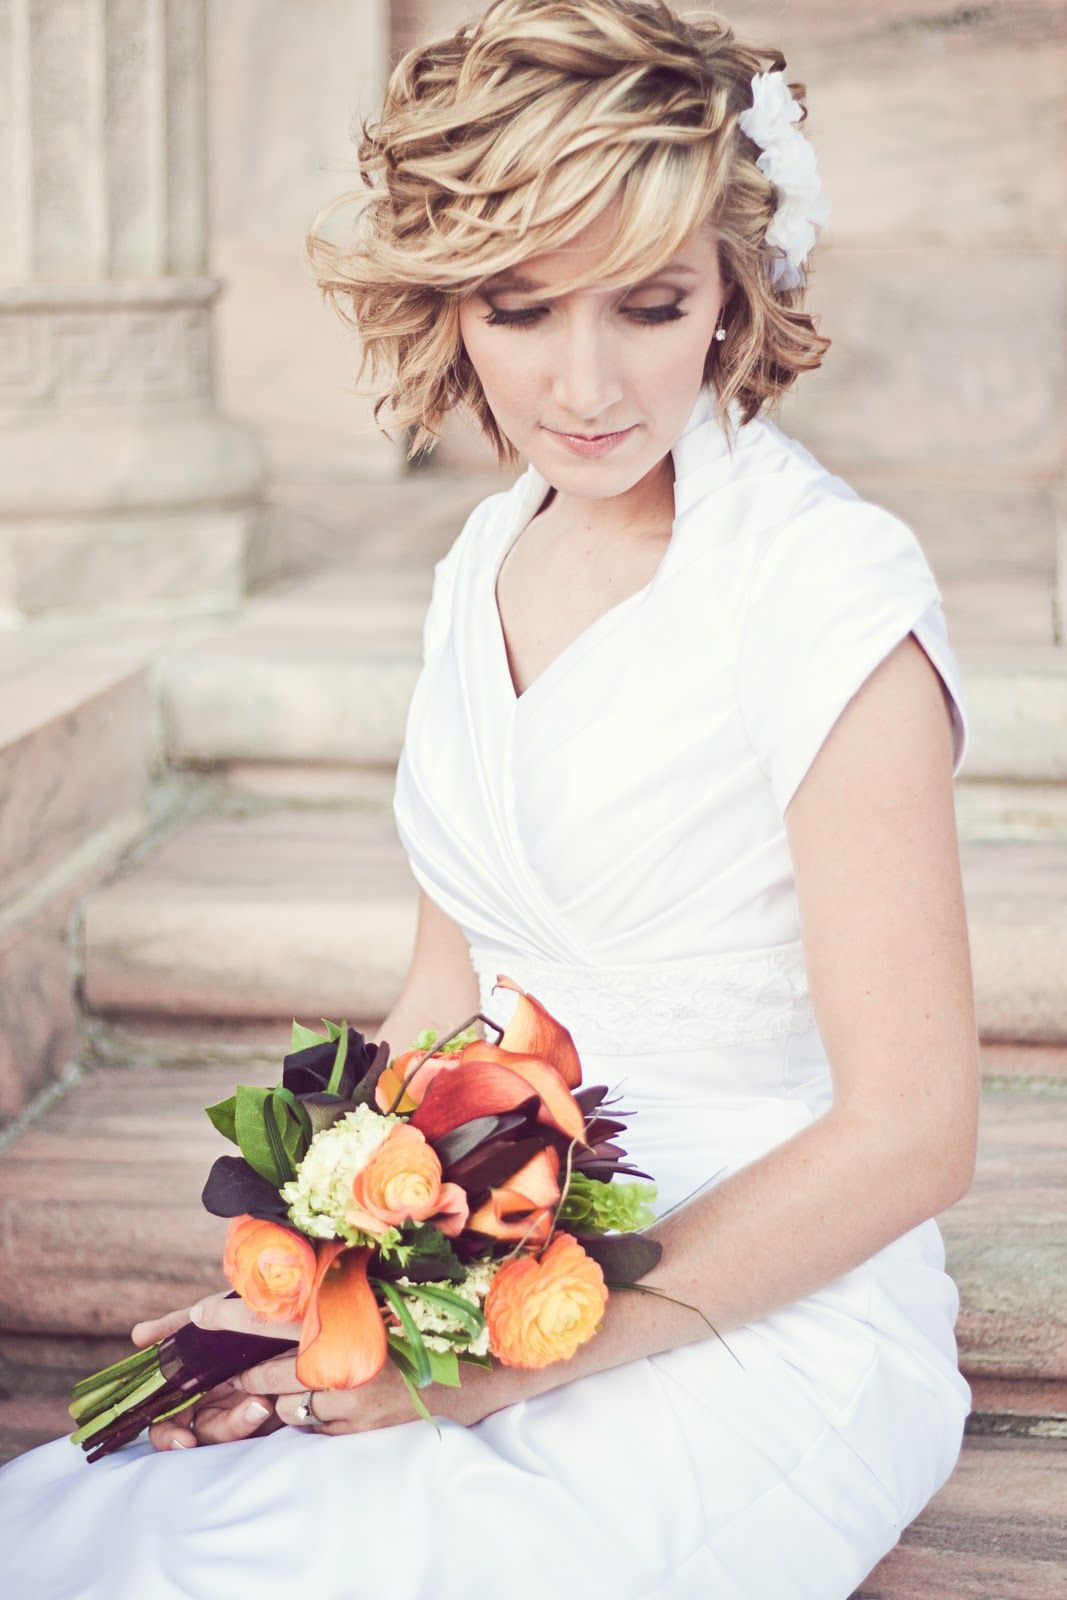 wedding day hair and make-up - short hair | alex crabtree hair and ...